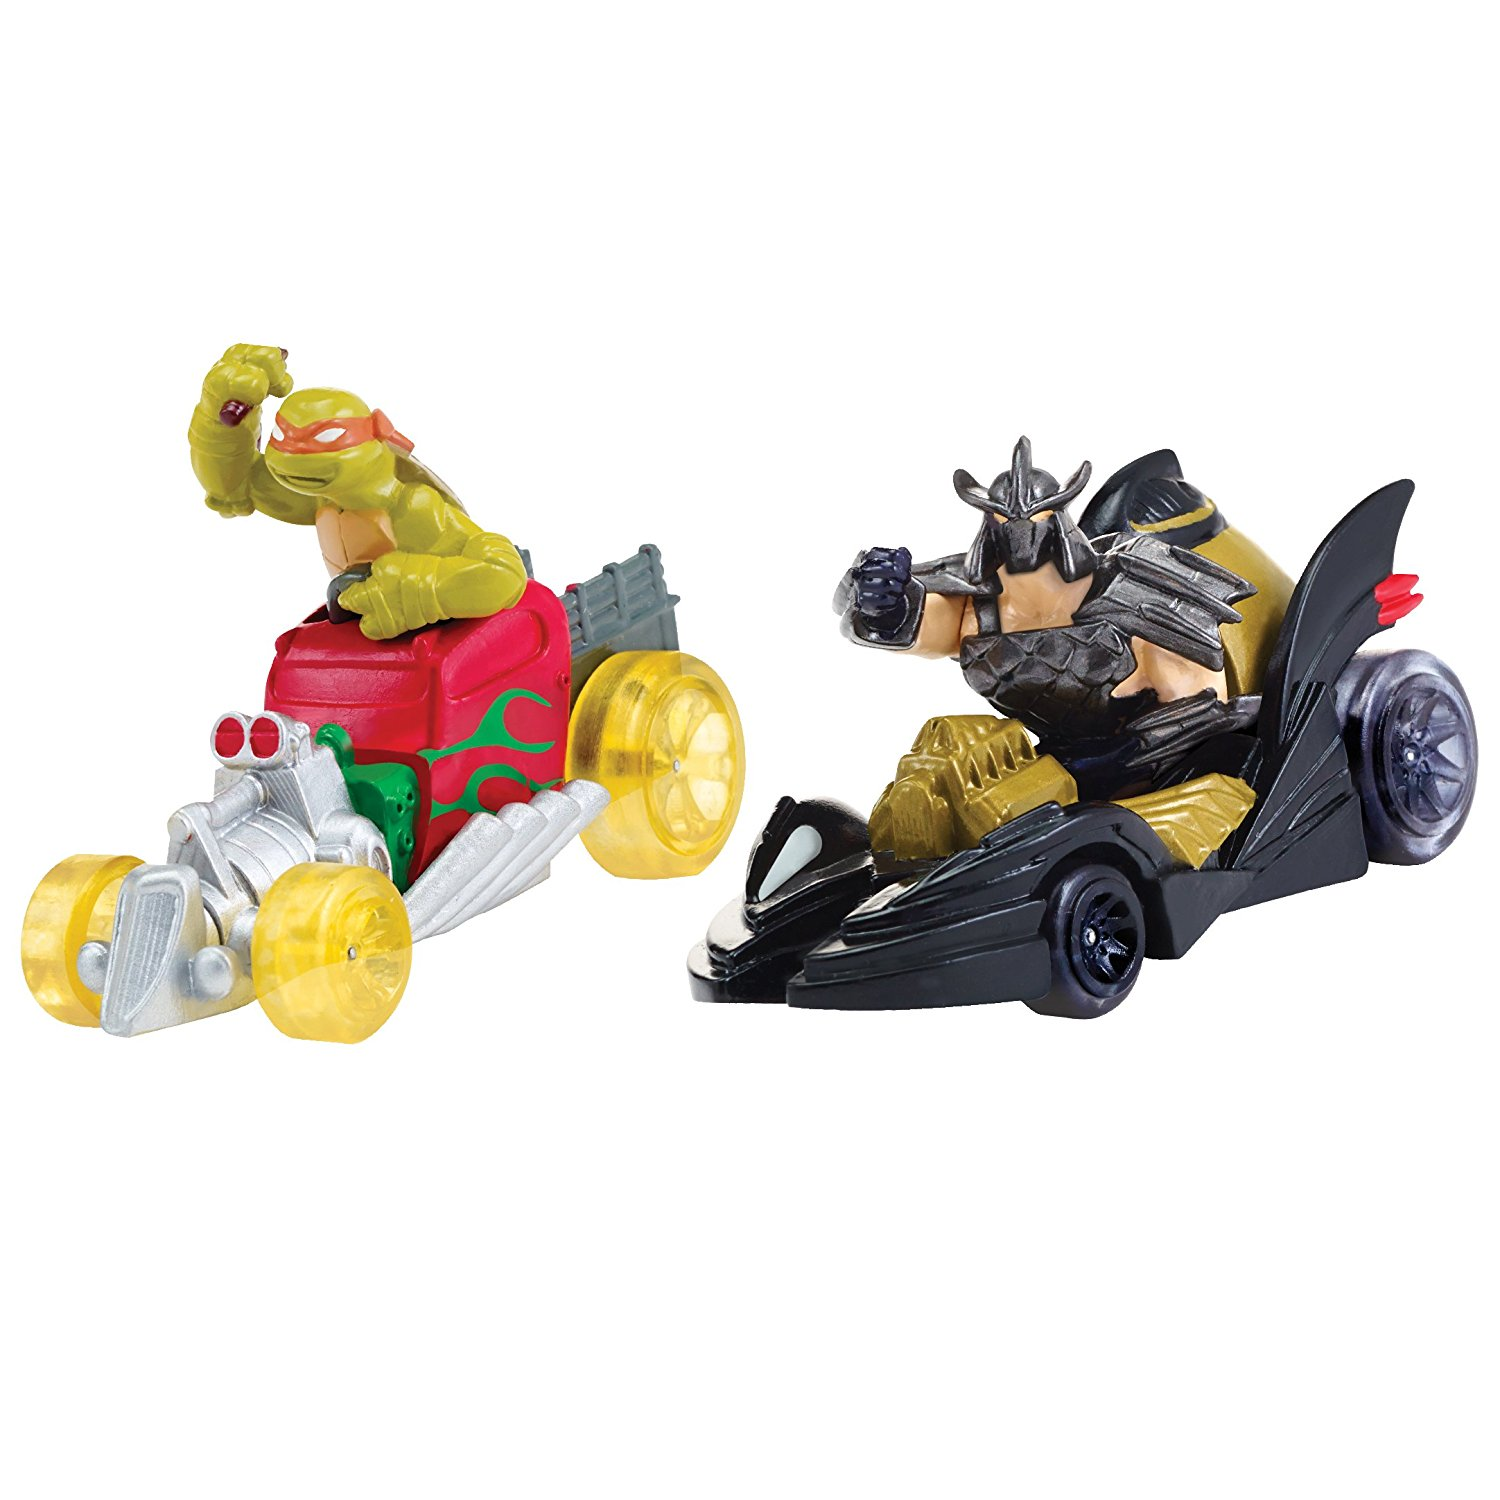 Teenage Mutant Ninja Turtles T-Machines Michelangelo in Hot Rod and Shredder in Shreddermobile Diecast Vehicle (2-Pack)